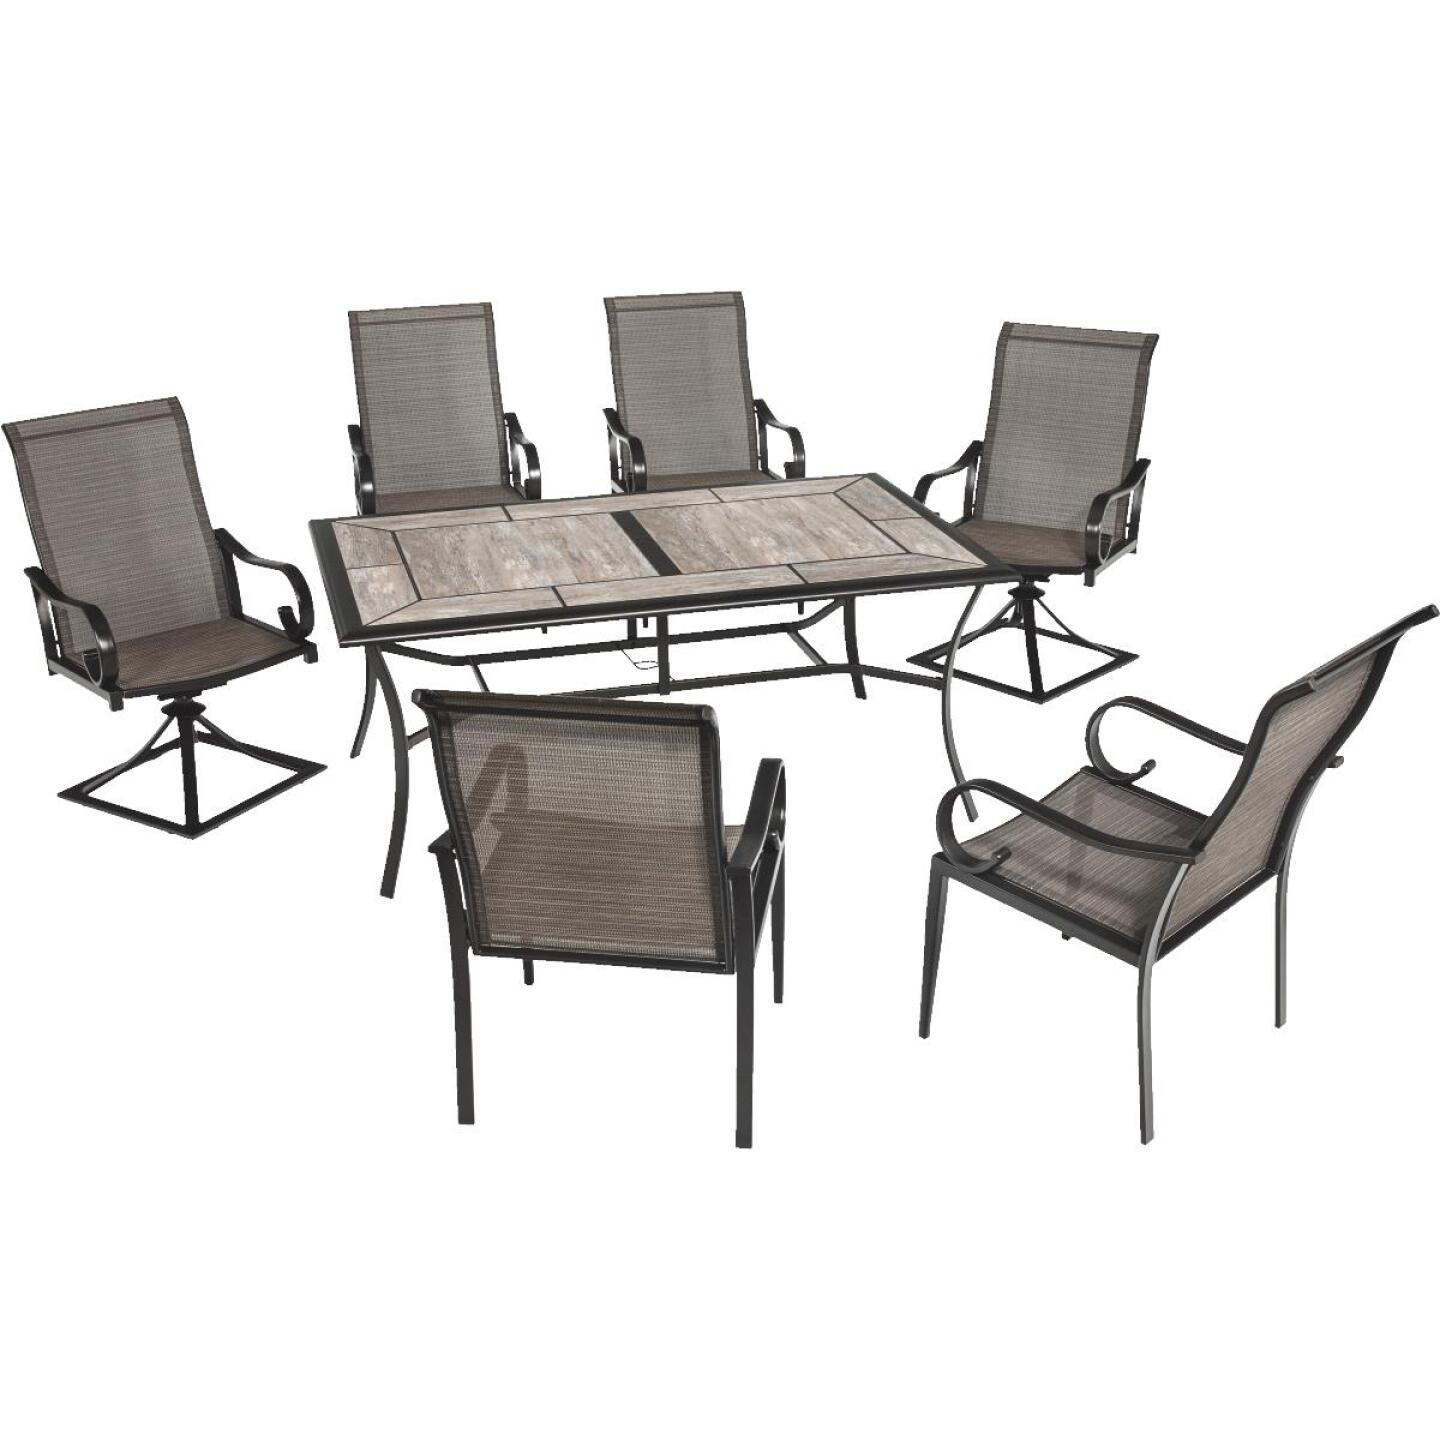 Outdoor Expressions Berkshire 7-Piece Dining Set Image 89